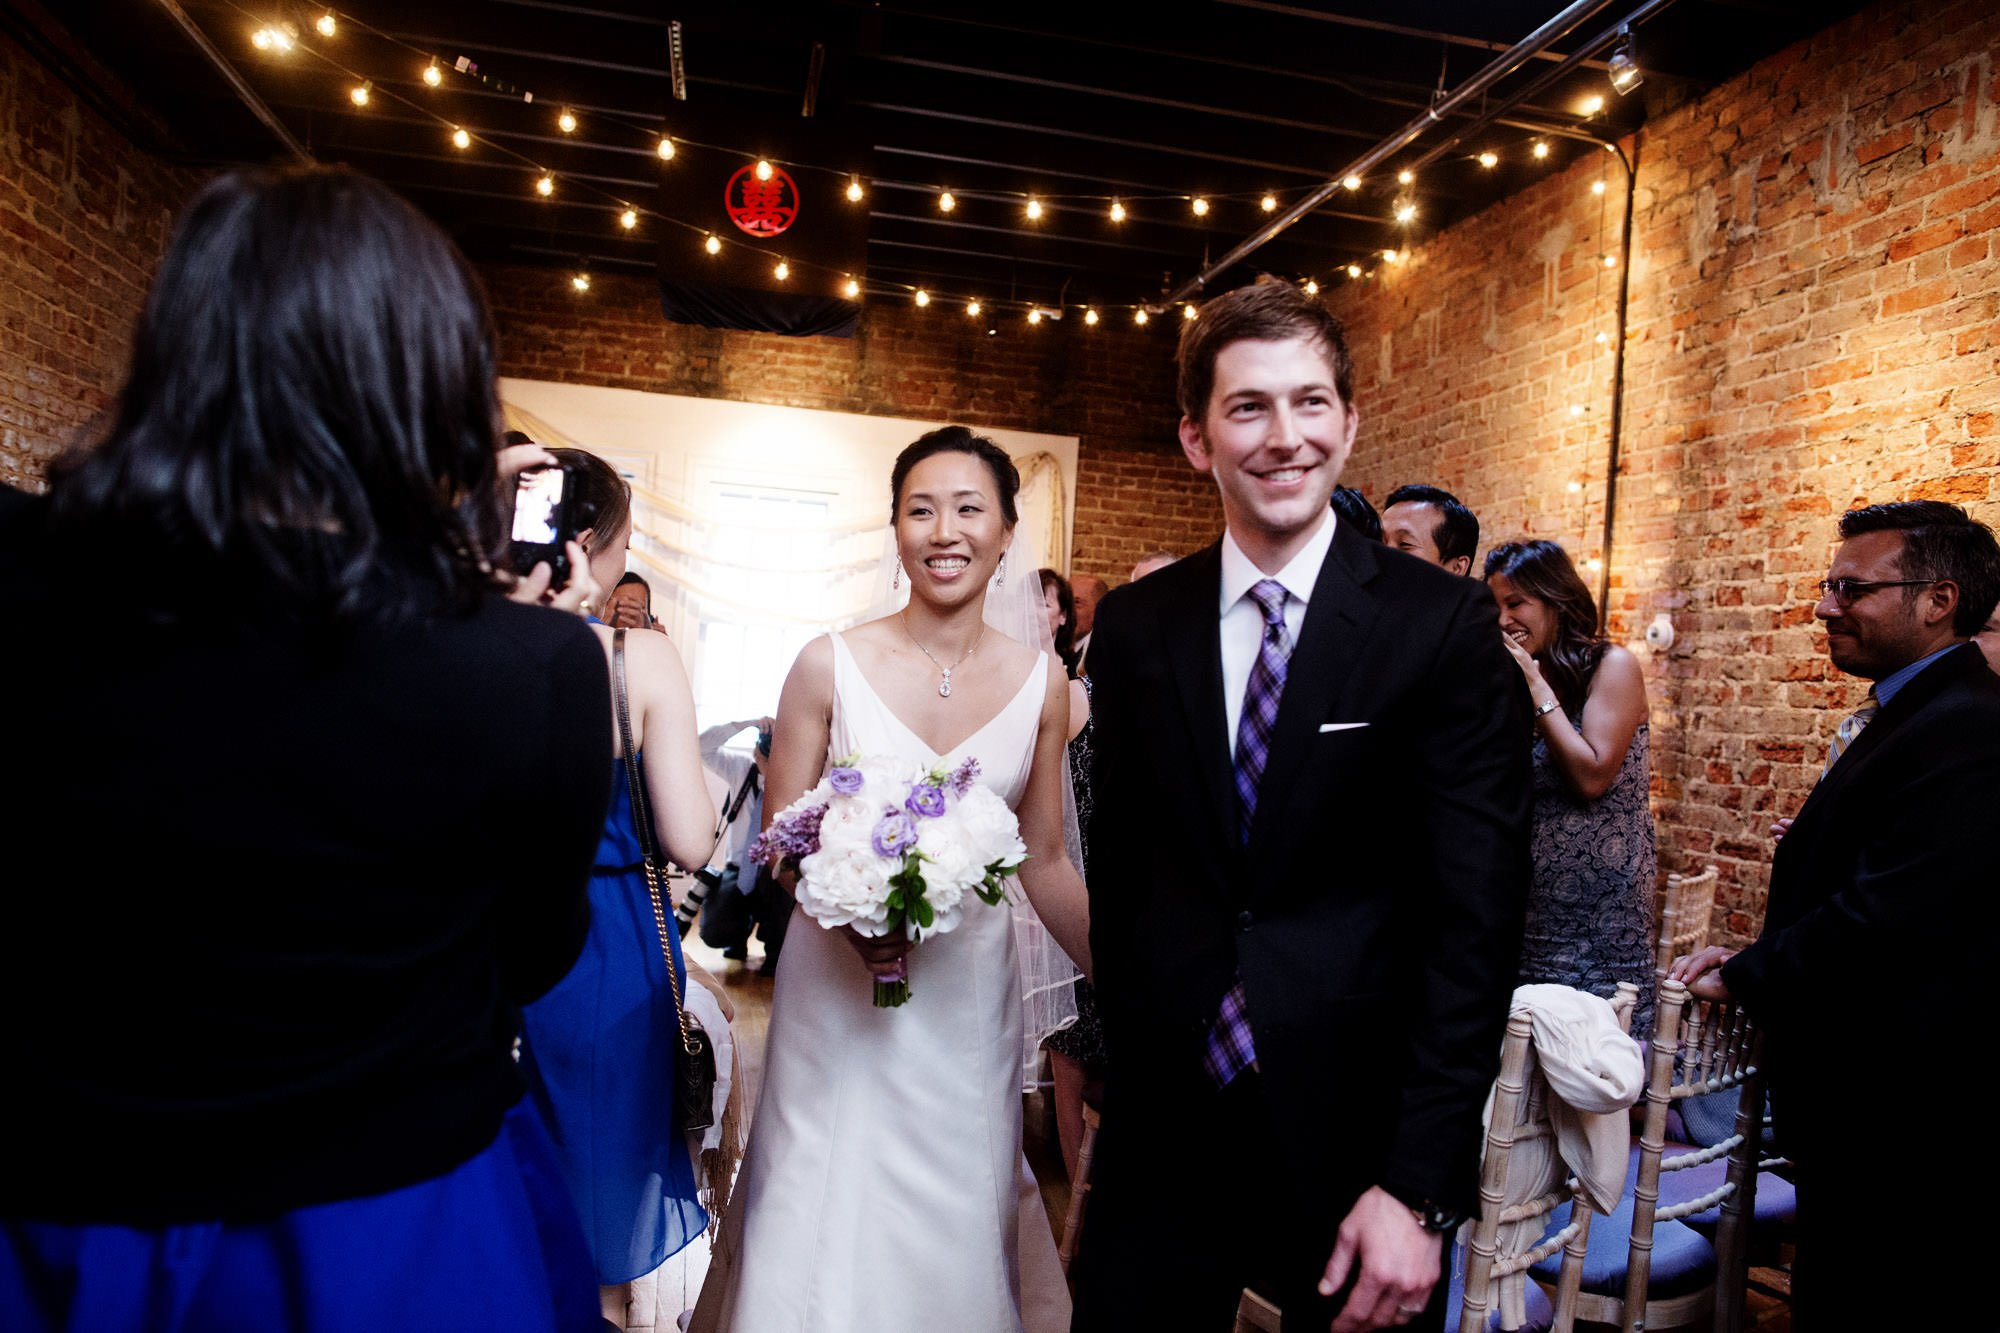 The bride and groom walk down the aisle following their wedding ceremony at Epic Yoga Studio.